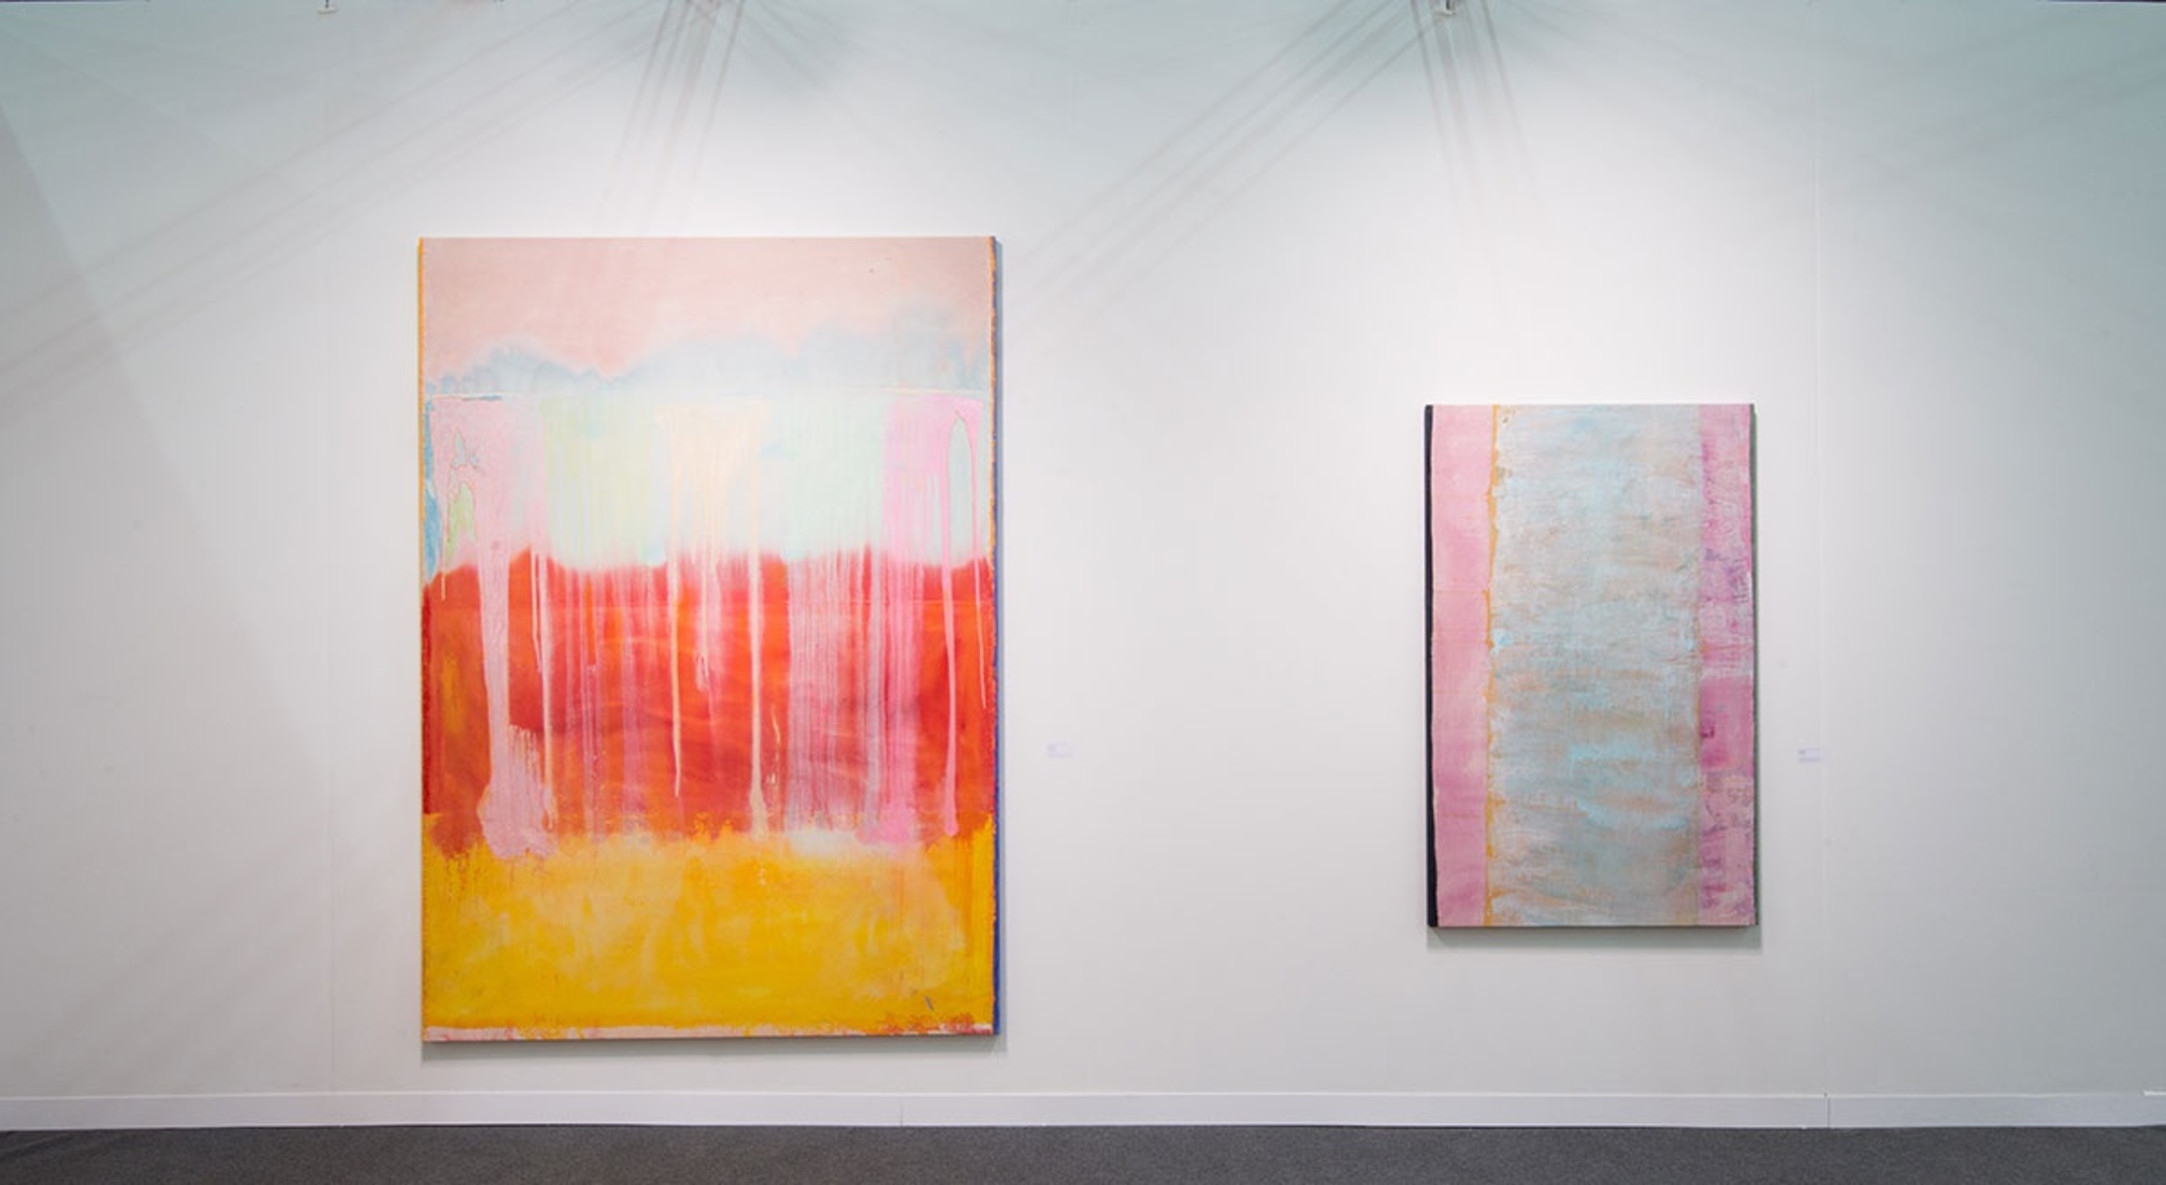 Installation view of Frank Bowling in Hales Gallery Booth at The Armory Show 2016